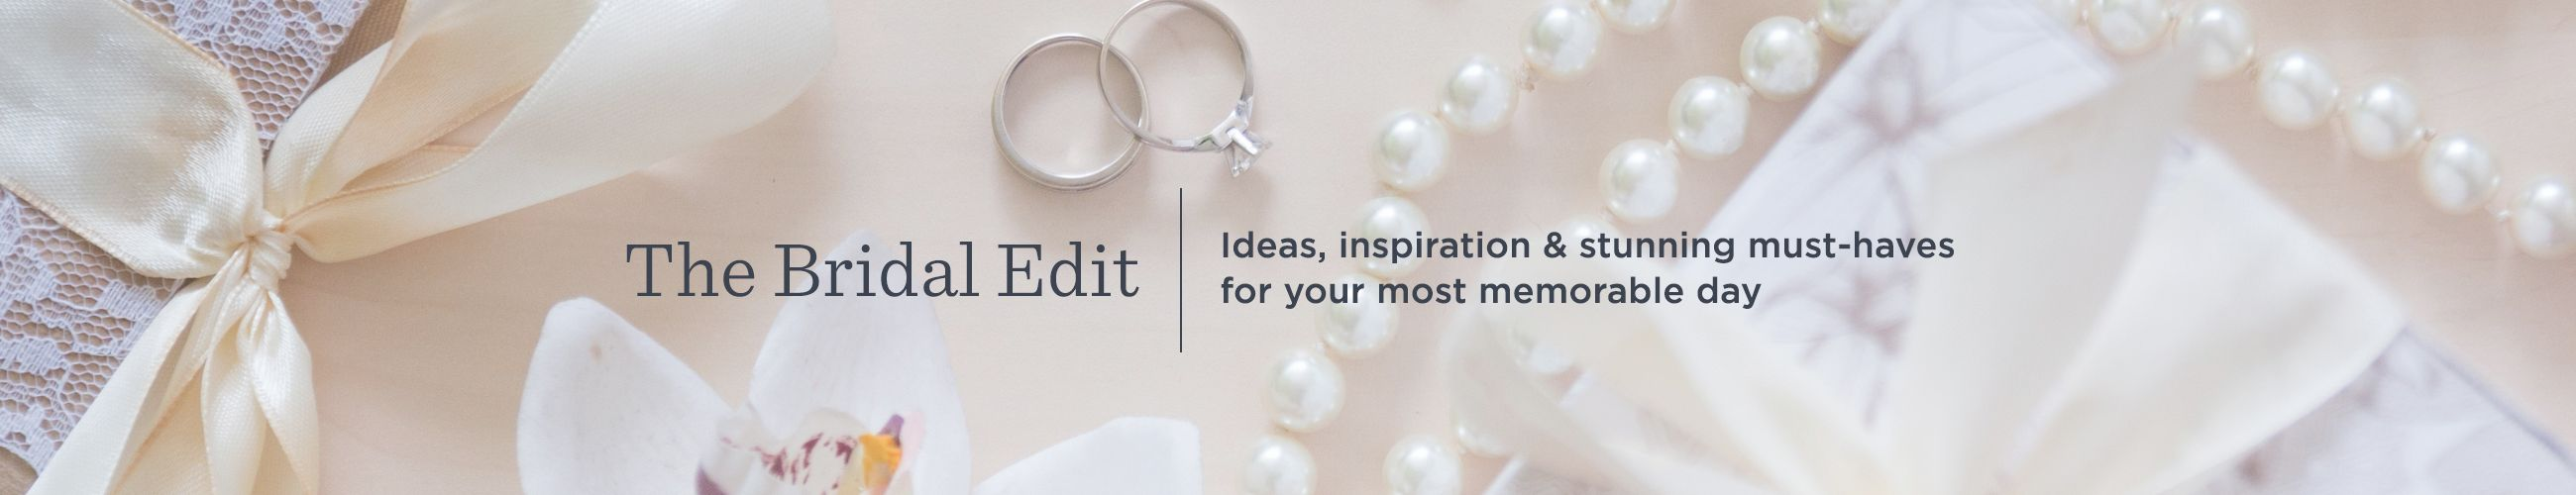 The Bridal Edit - Ideas, inspiration & stunning must-haves for your most memorable day